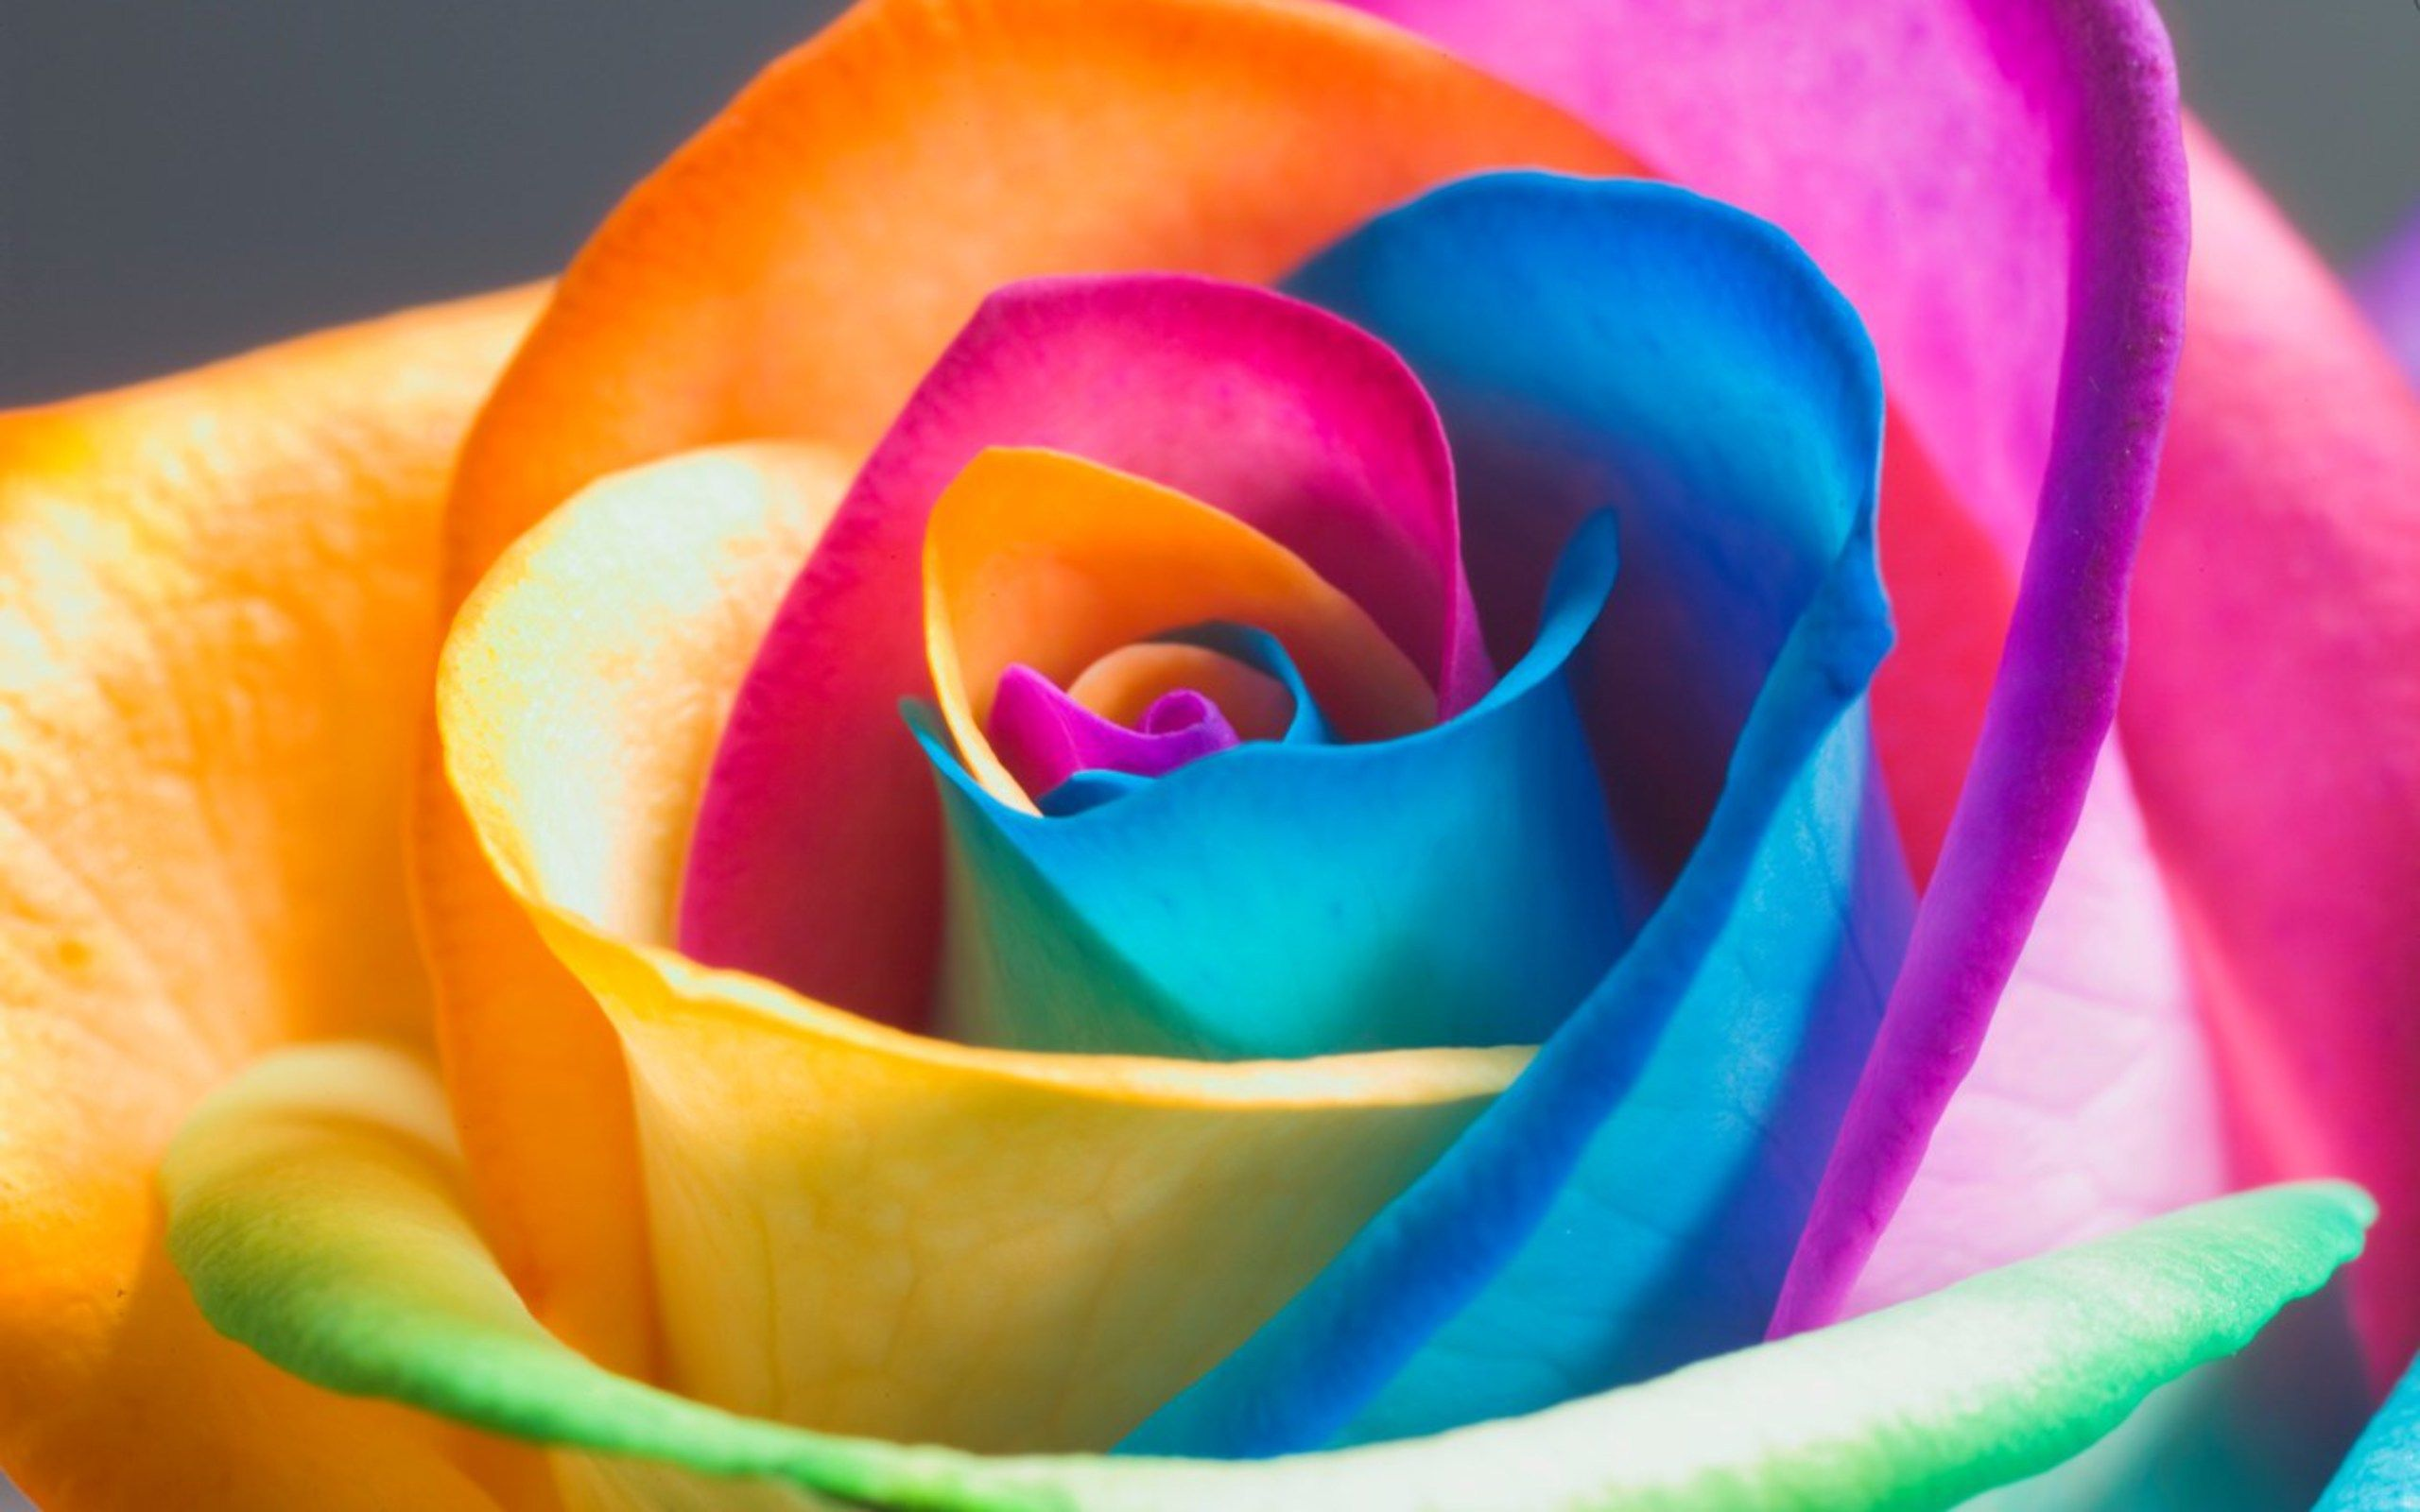 gousicteco Neon Rainbow Roses Wallpaper Images